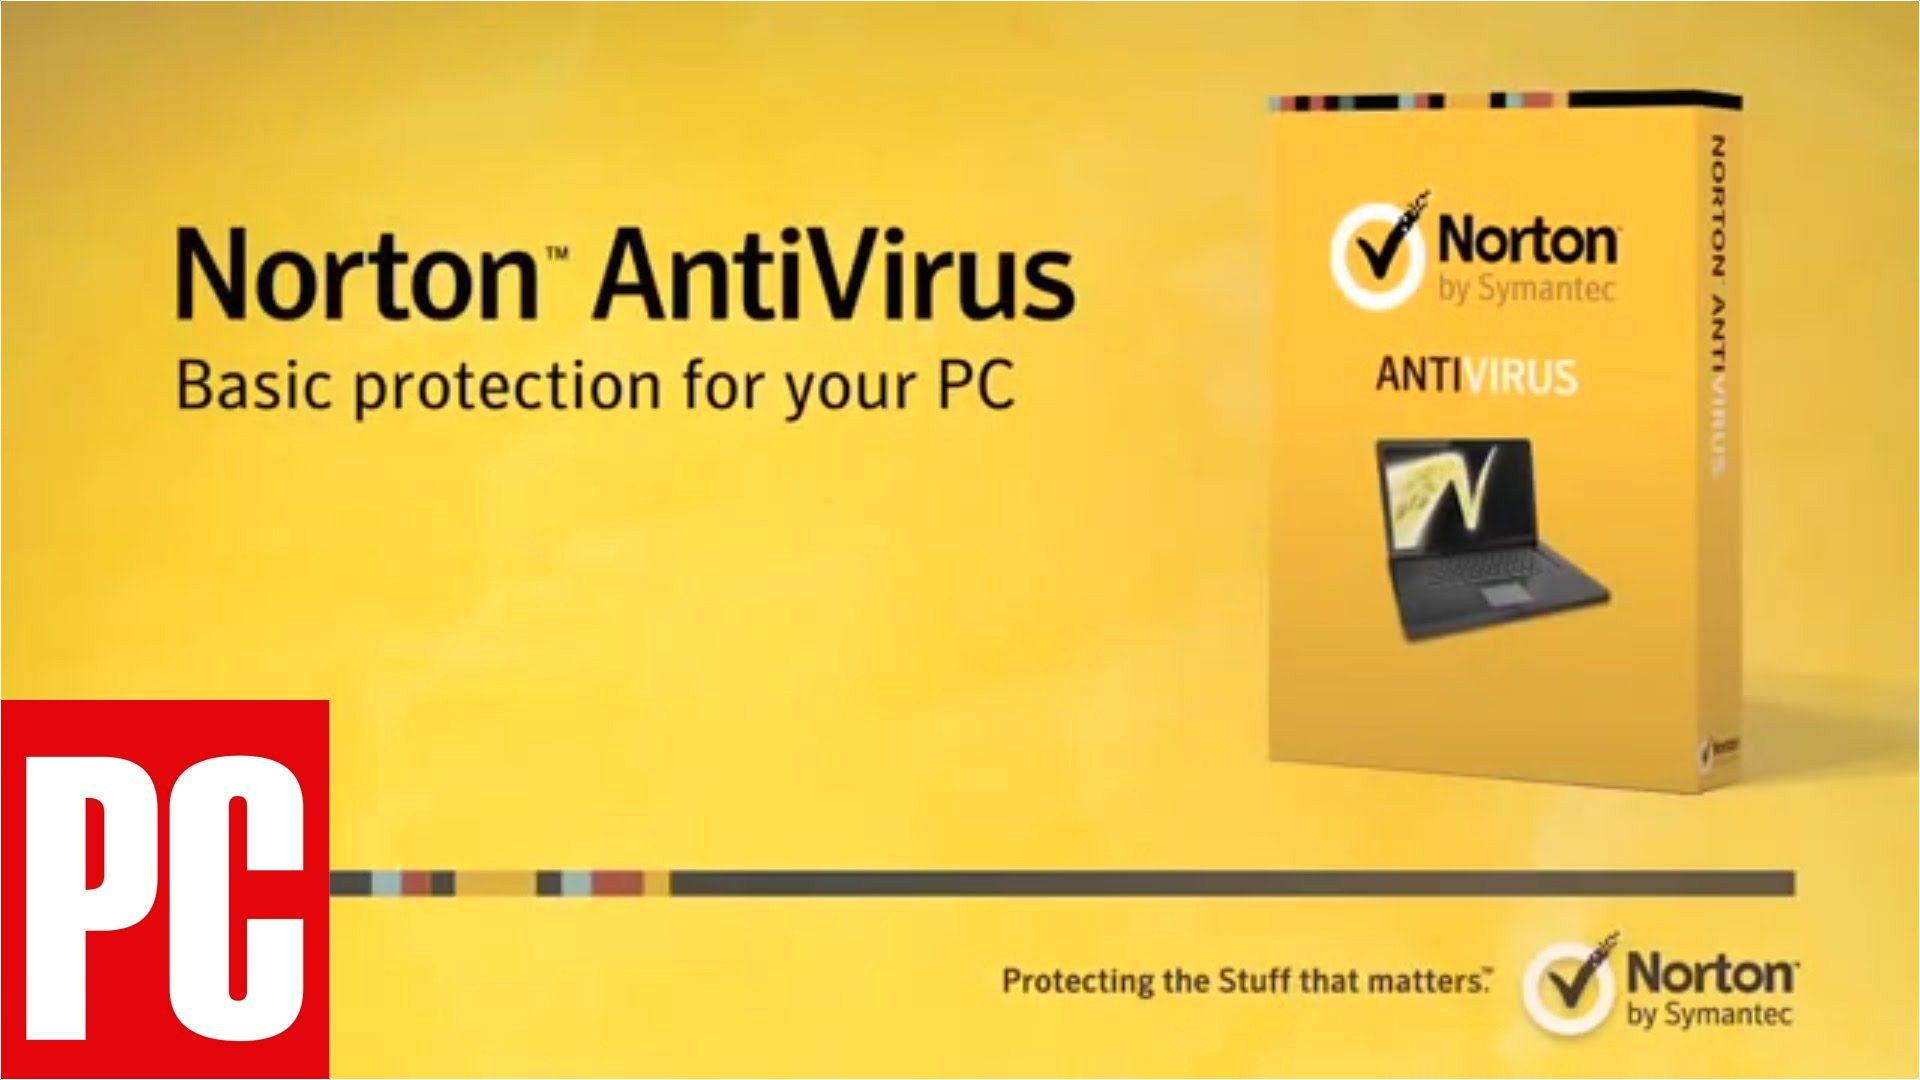 norton antivirus free download full version fails to install on your first try repeat the procedure mentioned above from step 1 up to finish